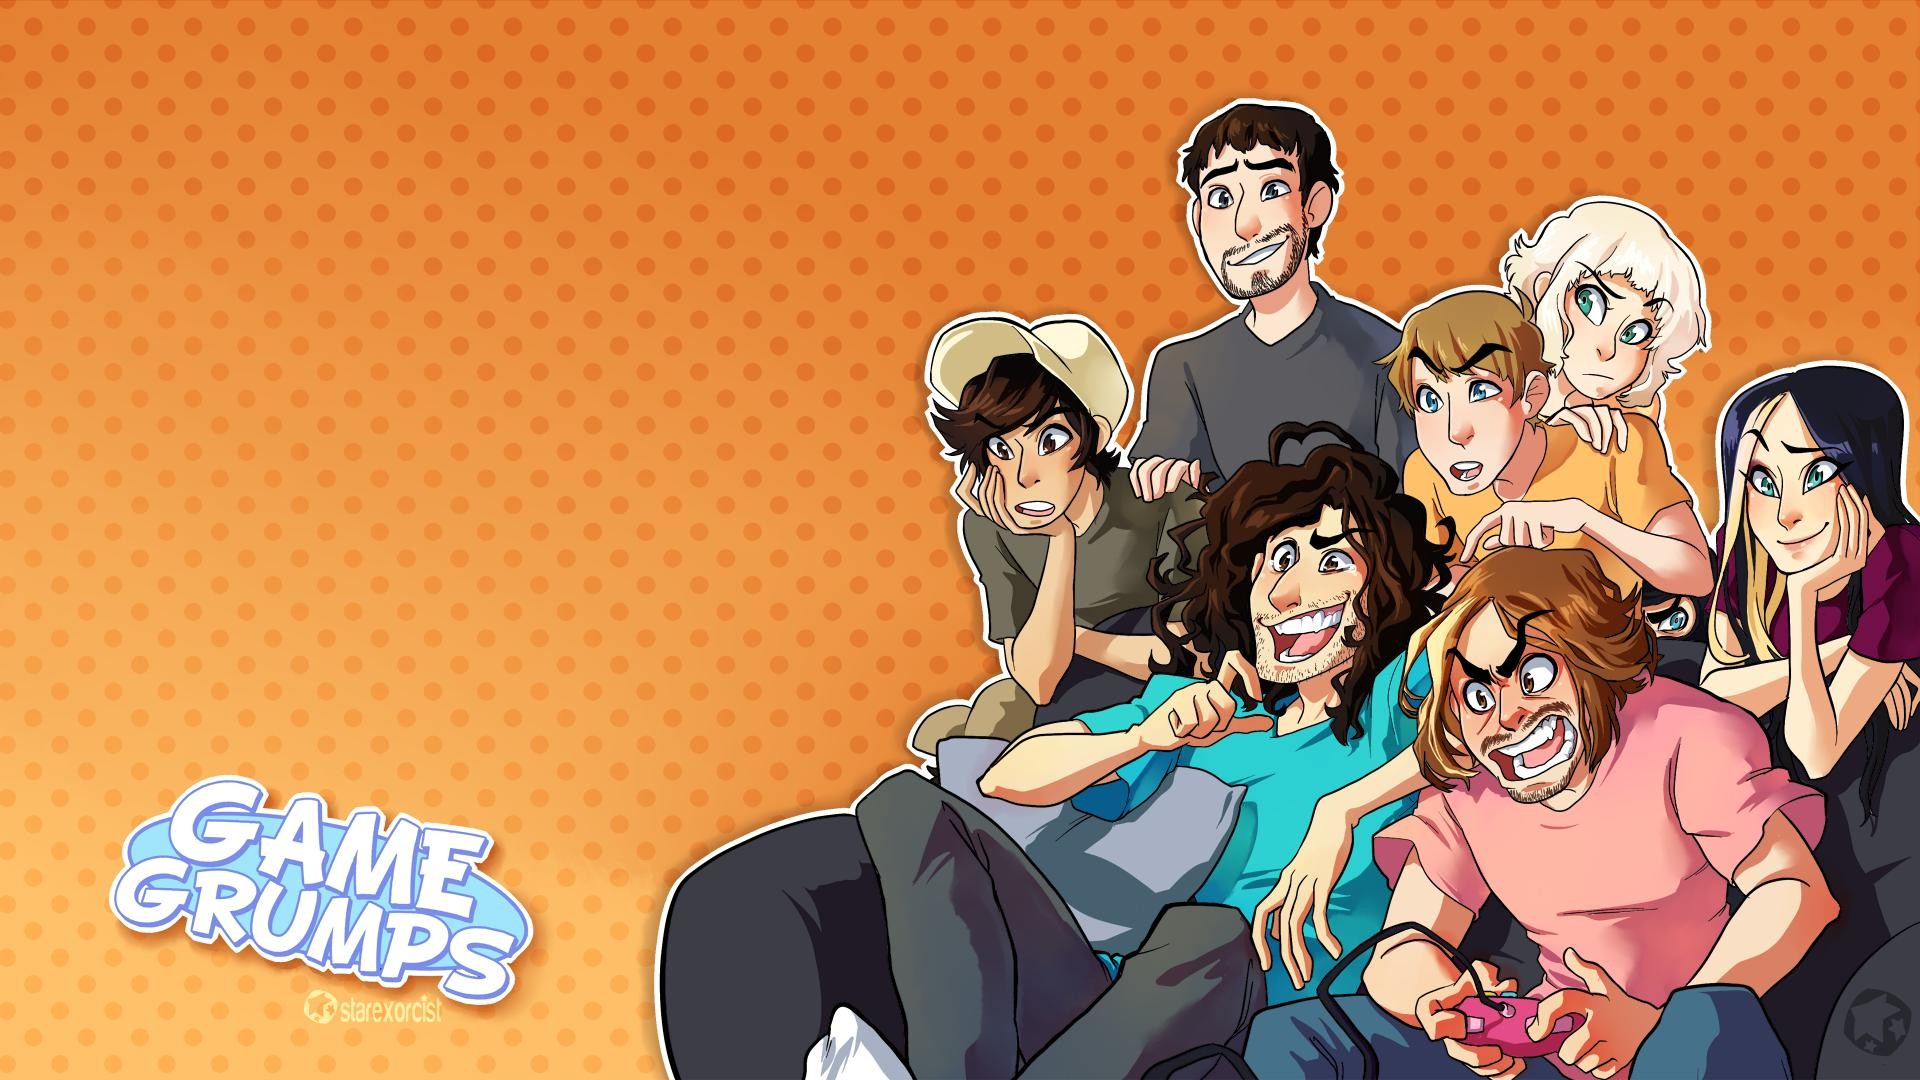 1920x1080 GameGrumps Wallpaper because I apparently have too much time on my .